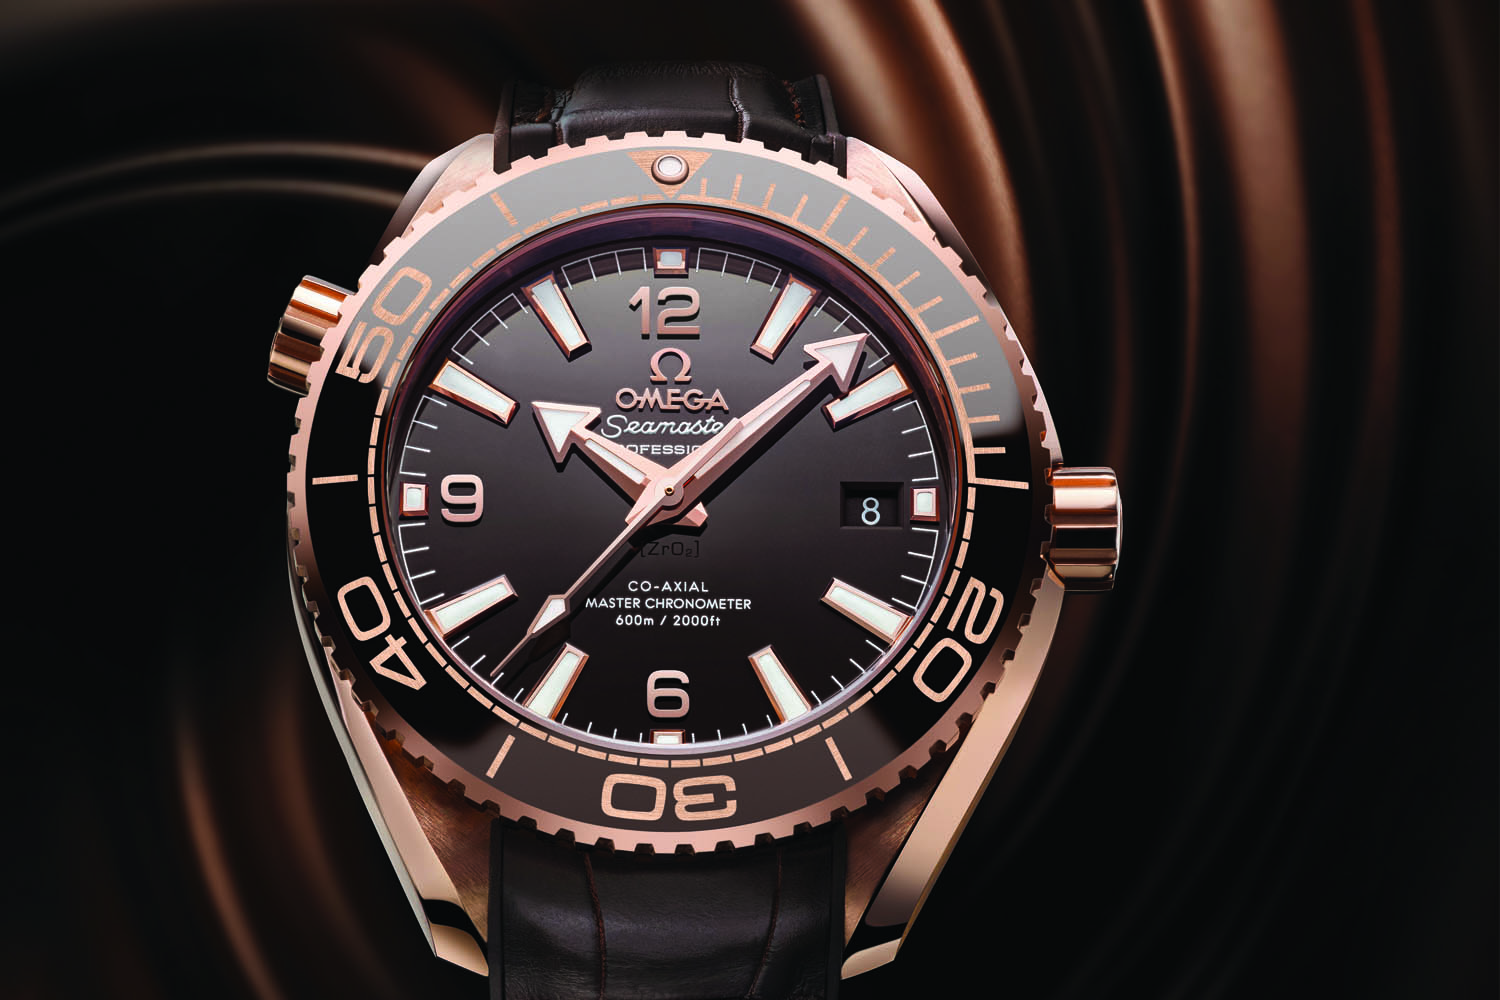 Top 5 Omega Watches - Models And Prices